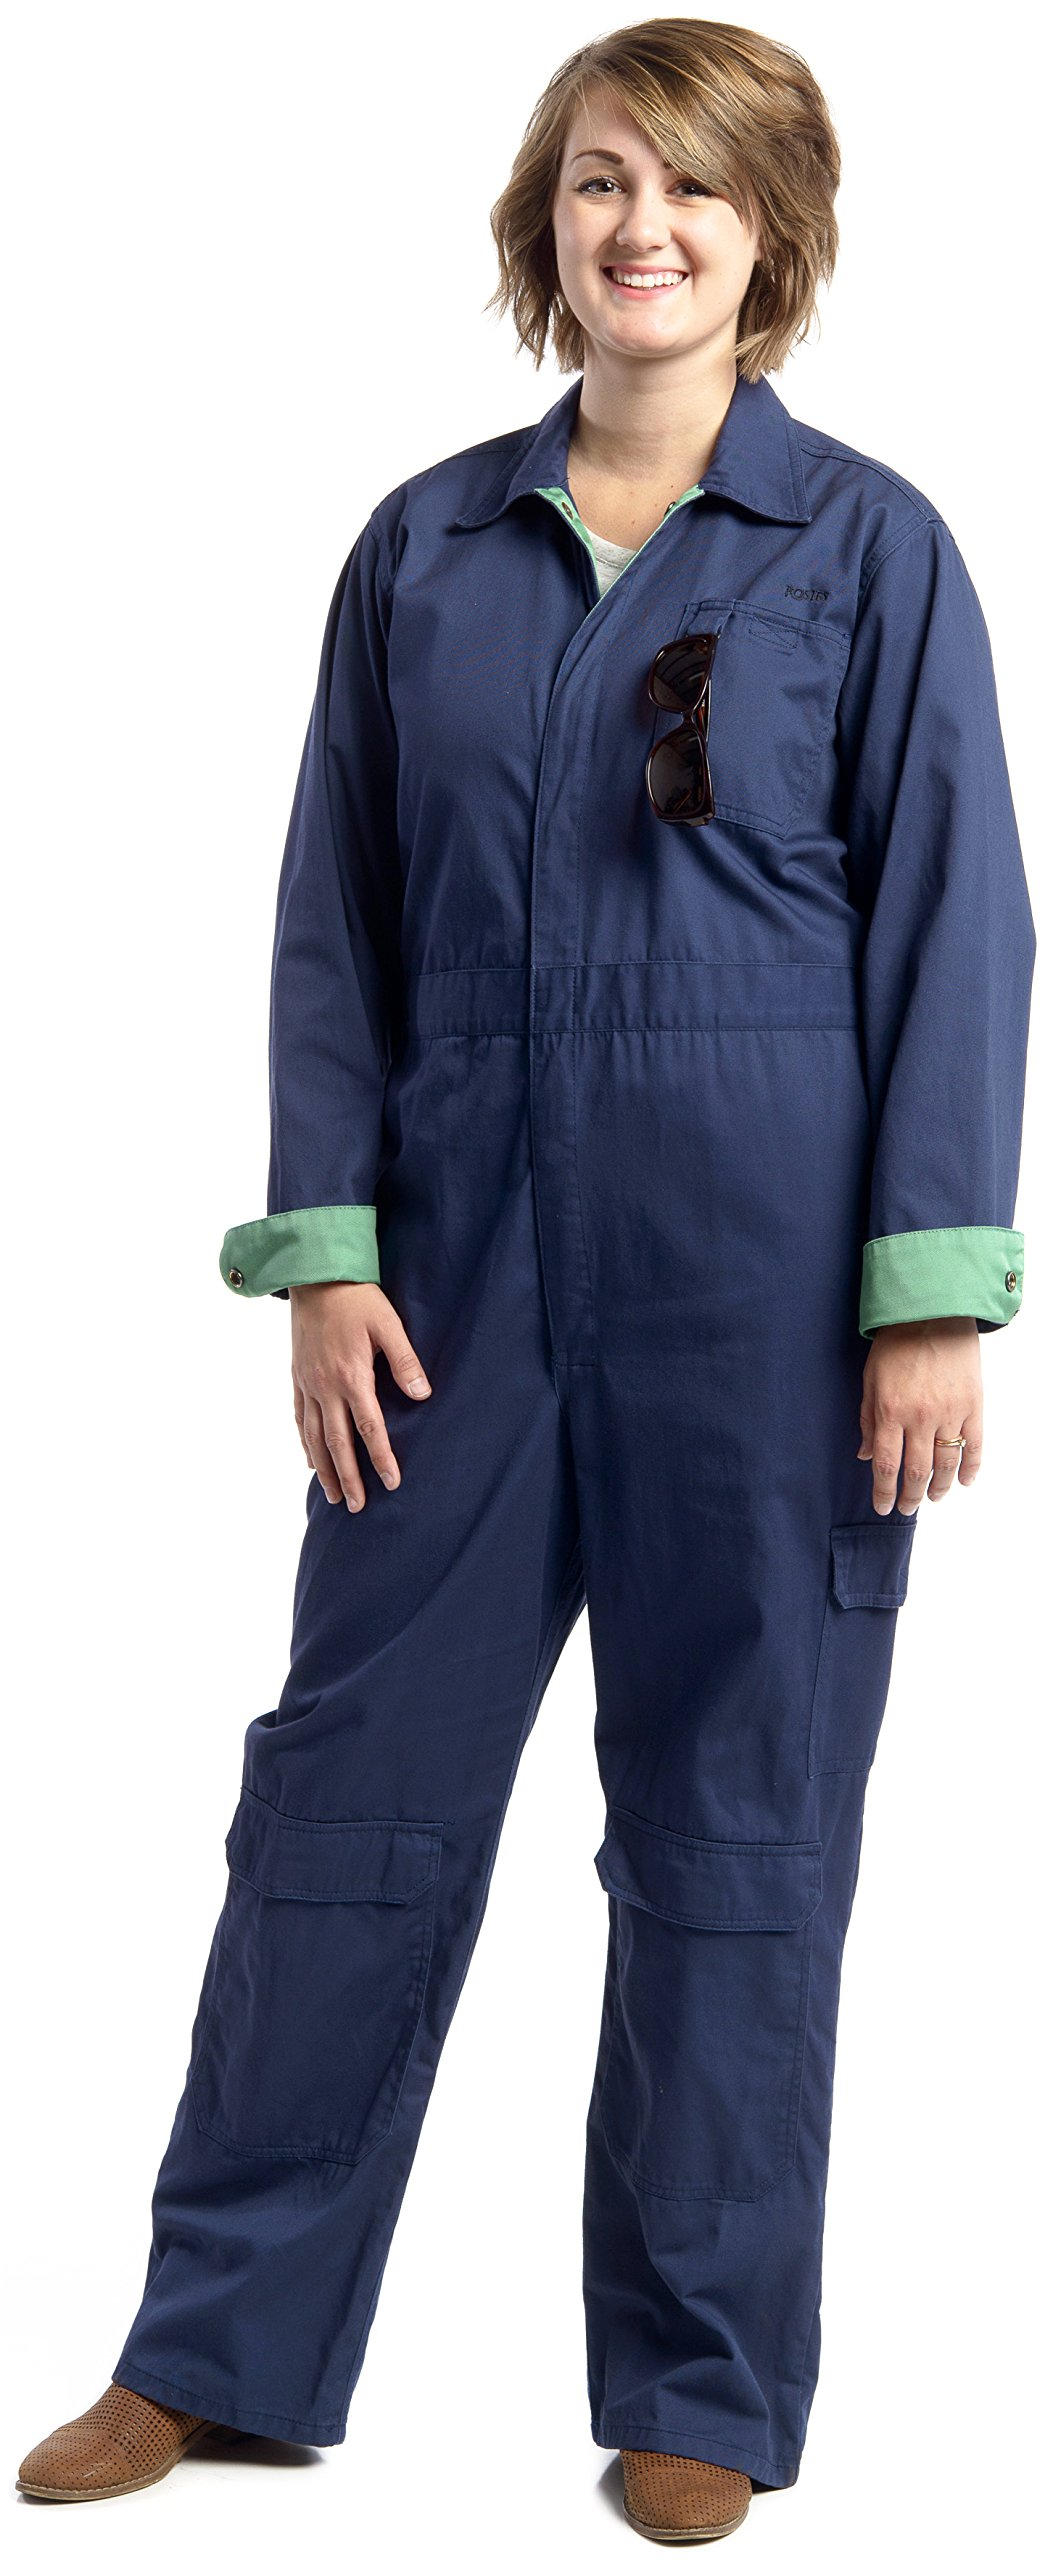 Rosies Workwear Women's Work Coveralls Navy with Green Trim (medium)